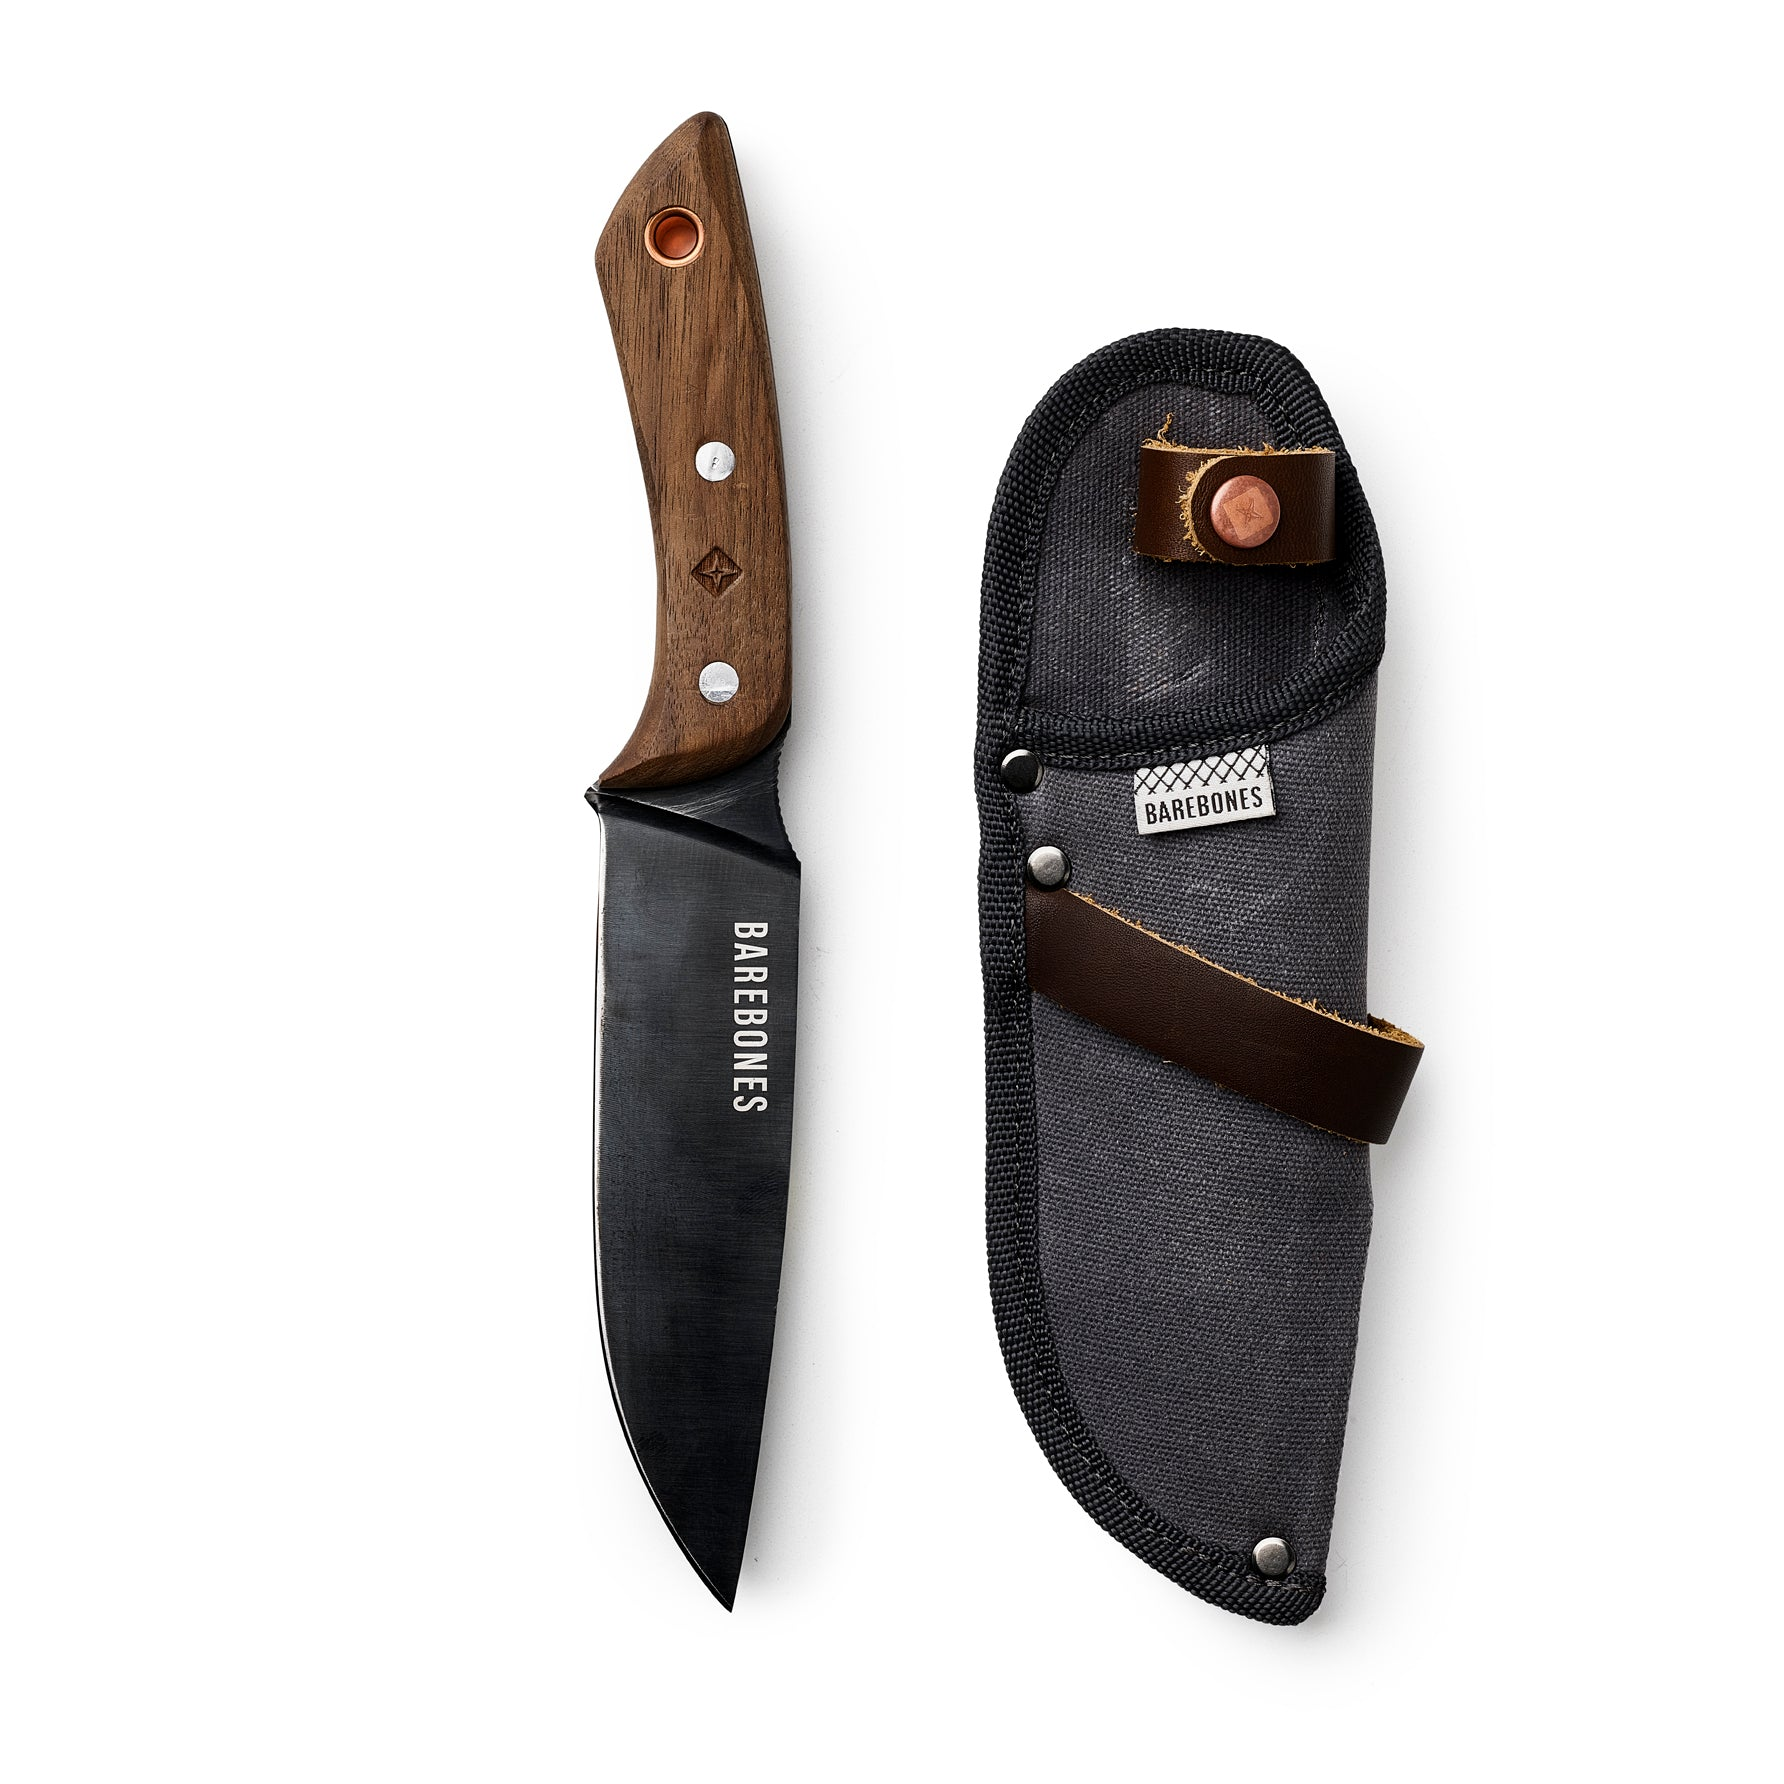 Field Knife & Sheath